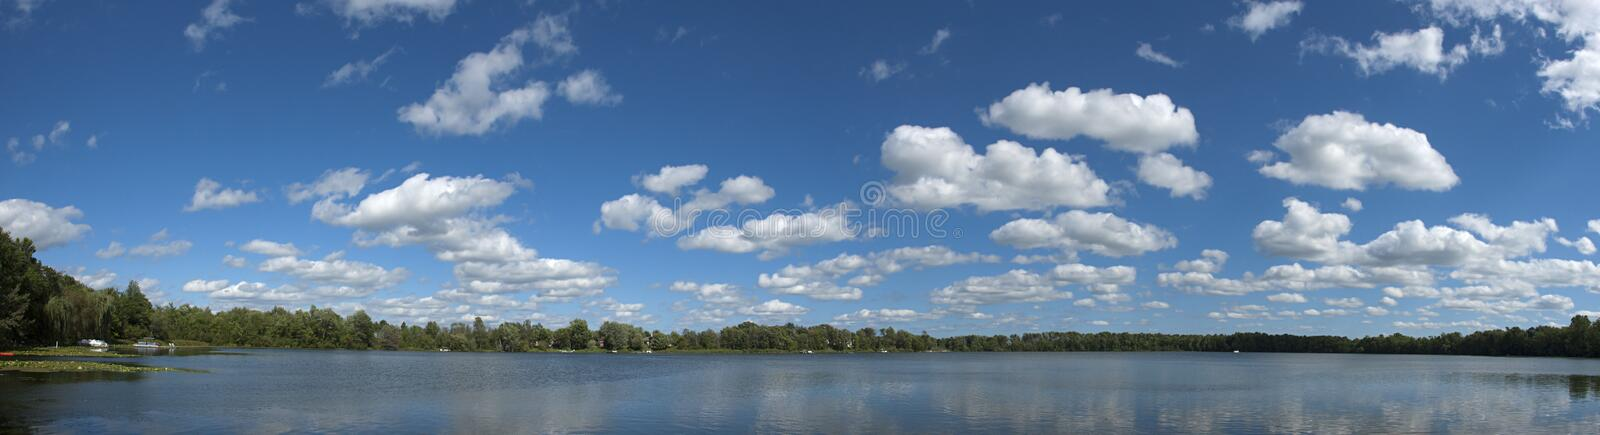 Lake Clouds Sky Water Panoramic, Panorama, Banner. Quiet fishing lake panorama with clouds and sky. Unique panoramic banner image with peaceful and serene water royalty free stock image